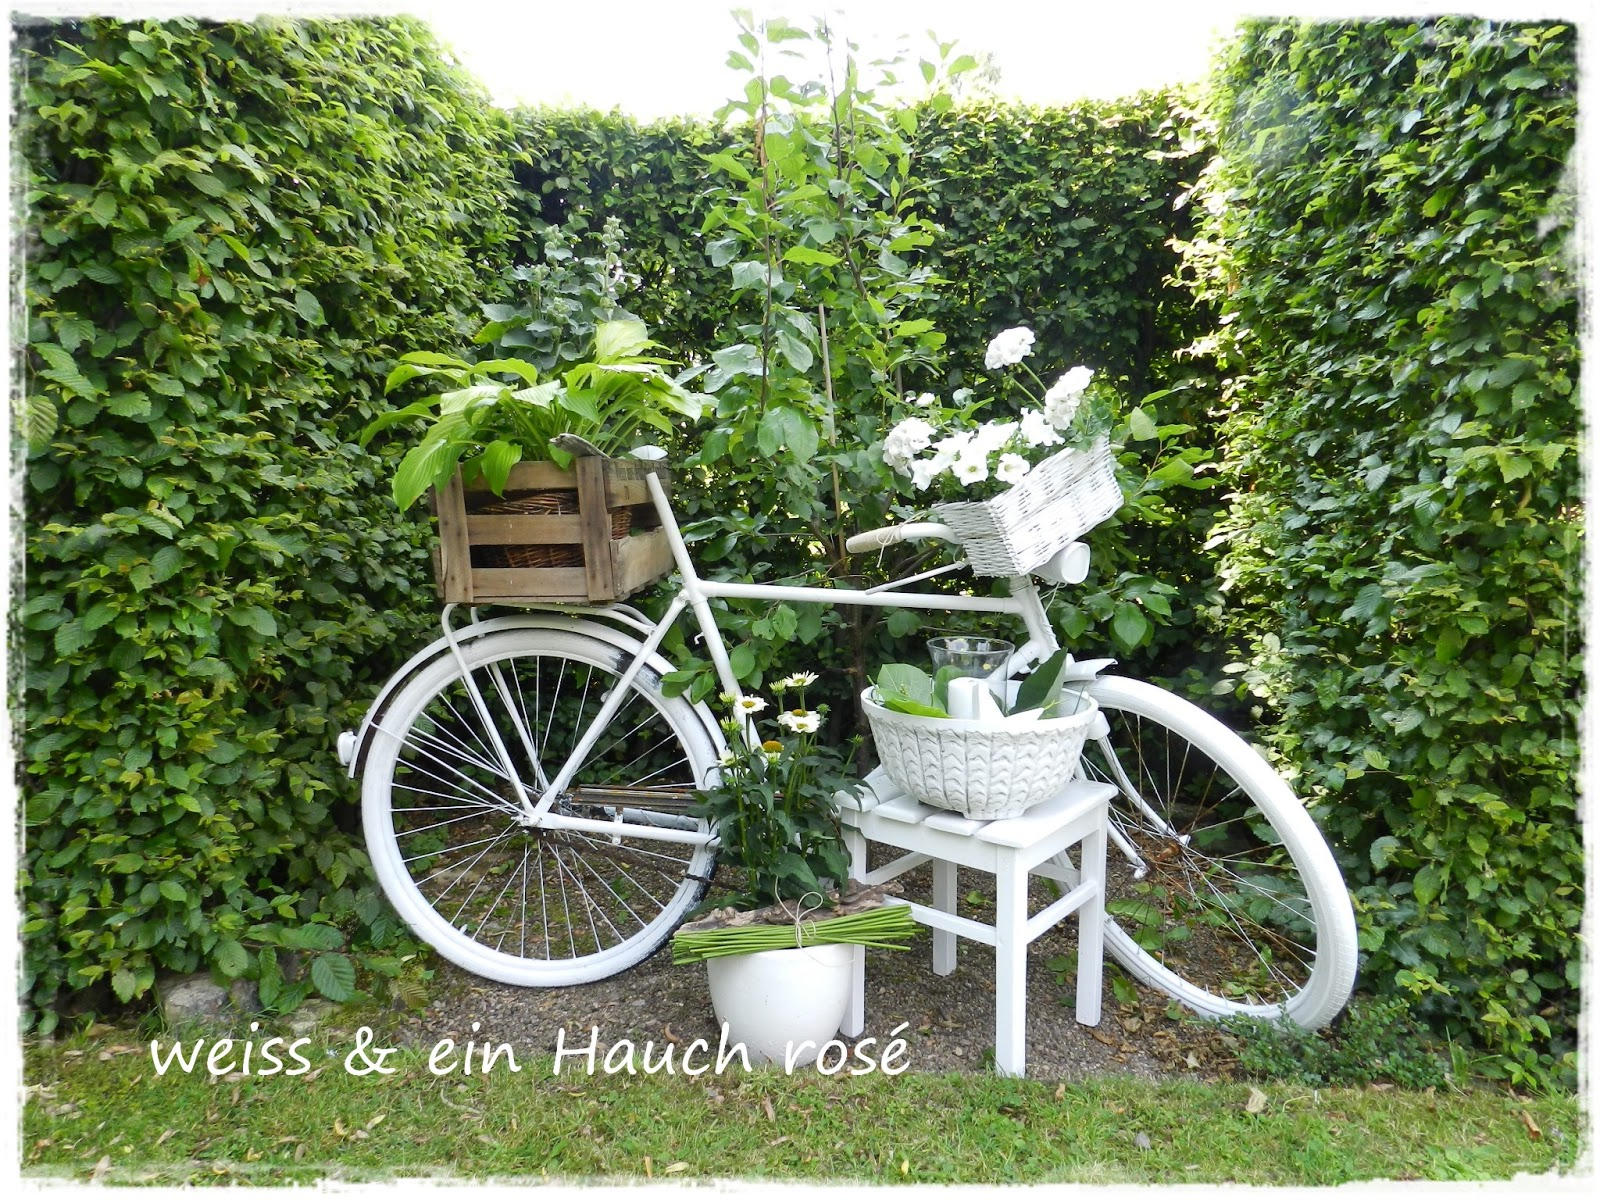 wei ein hauch ros fahrrad trifft blumen. Black Bedroom Furniture Sets. Home Design Ideas